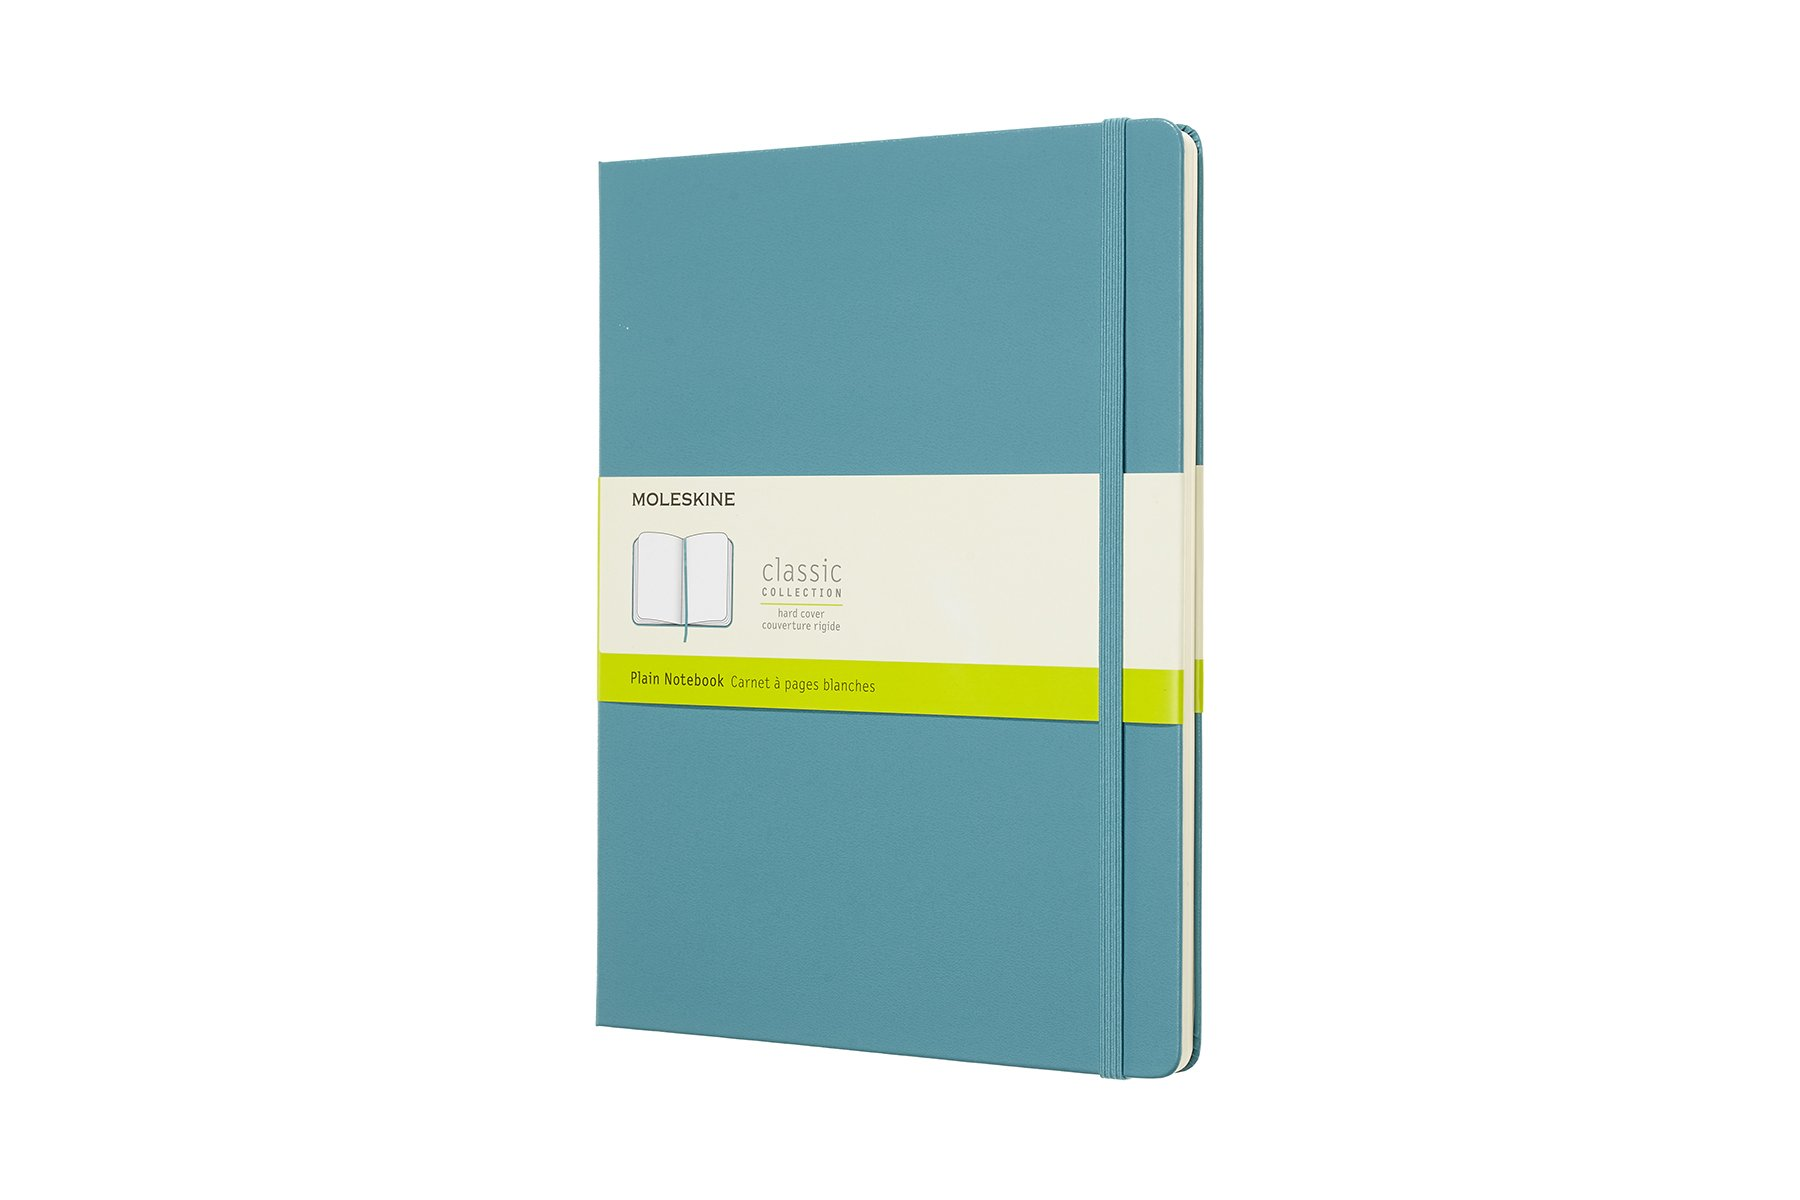 Moleskine Classic Notebook, Extra Large, Ruled, Blue Reef, Hard Cover (7.5 x 9.75)